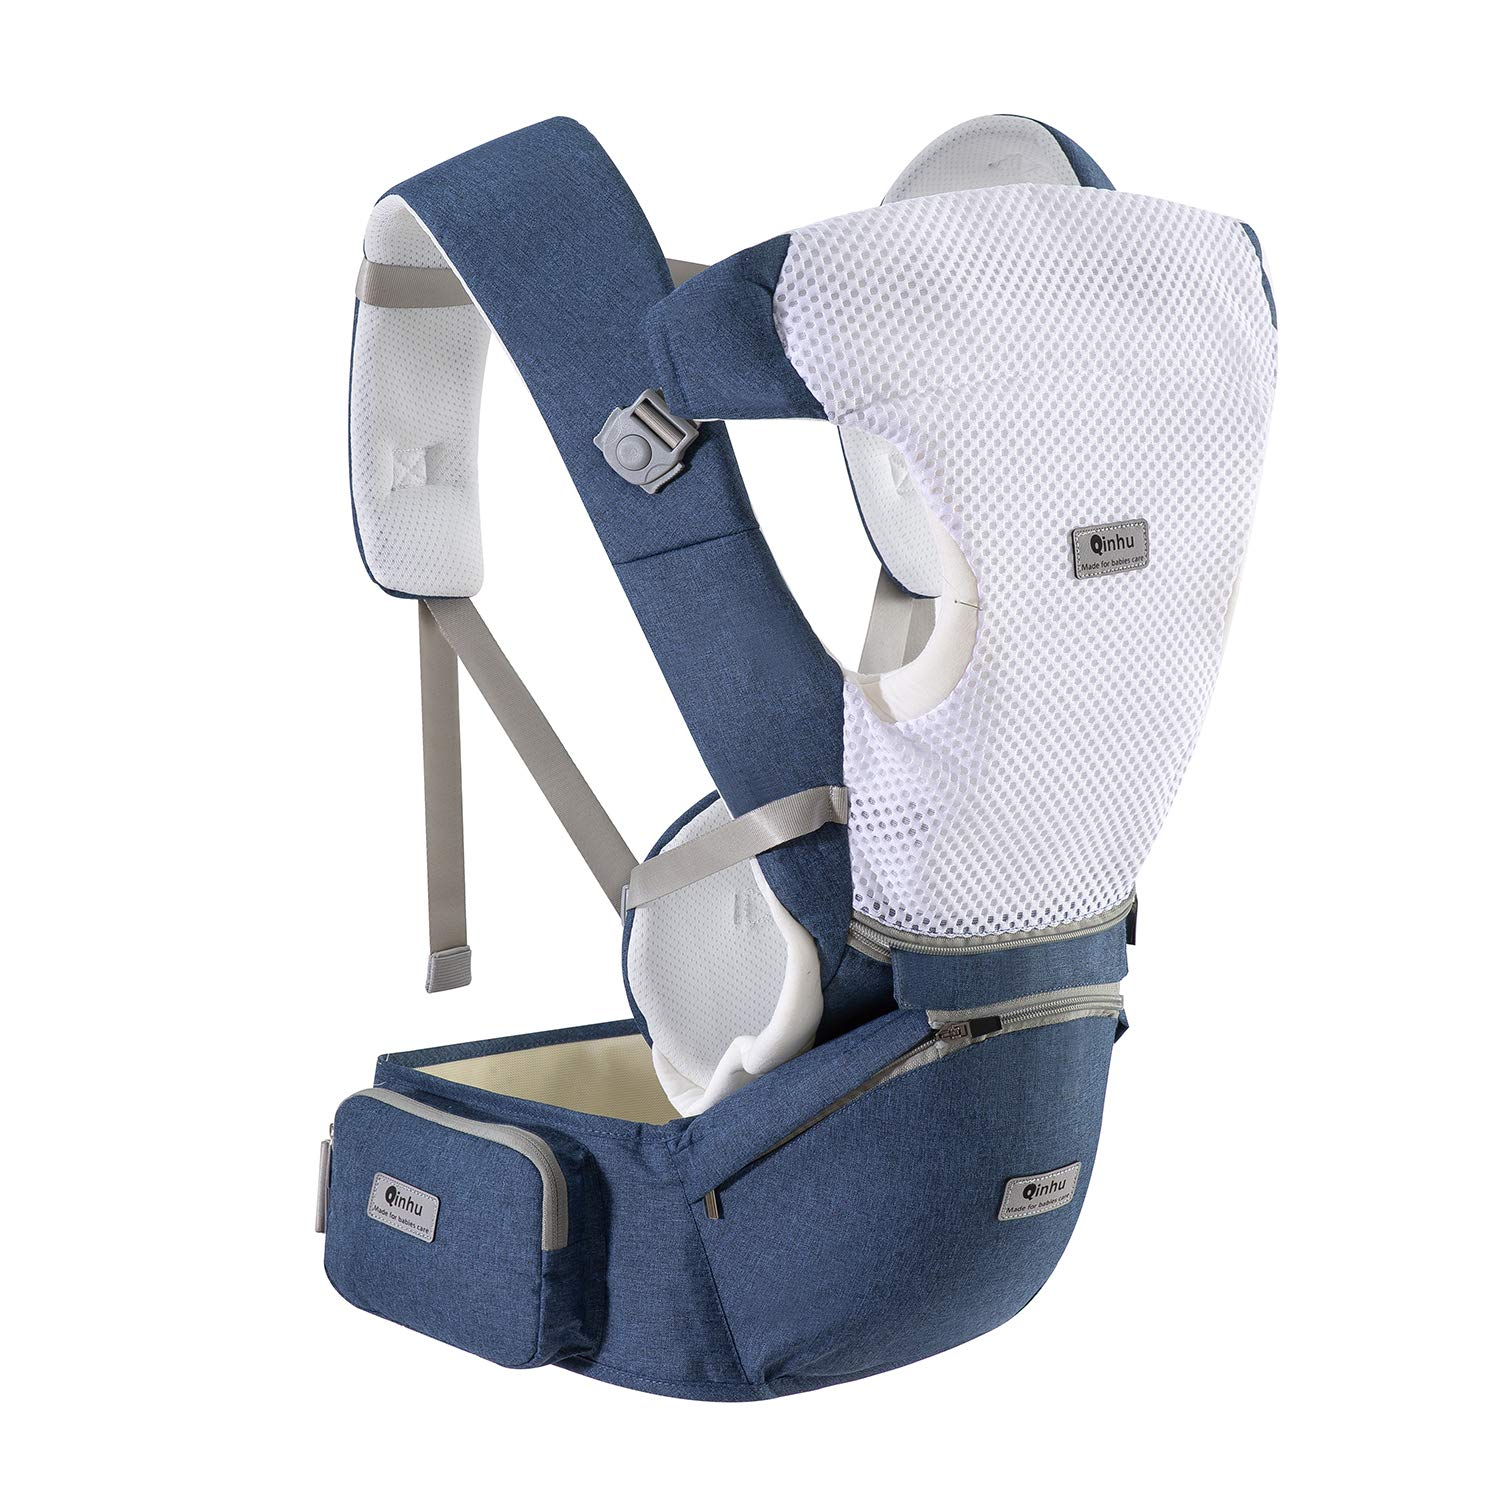 QINHU Baby Carrier, Multifunction Baby Carrier Hip Seat for 3-36 Month Baby, 6-in-1 Ways to Carry, Adjustable Size,All Seasons, Perfect for Hiking Shopping Travelling Blue